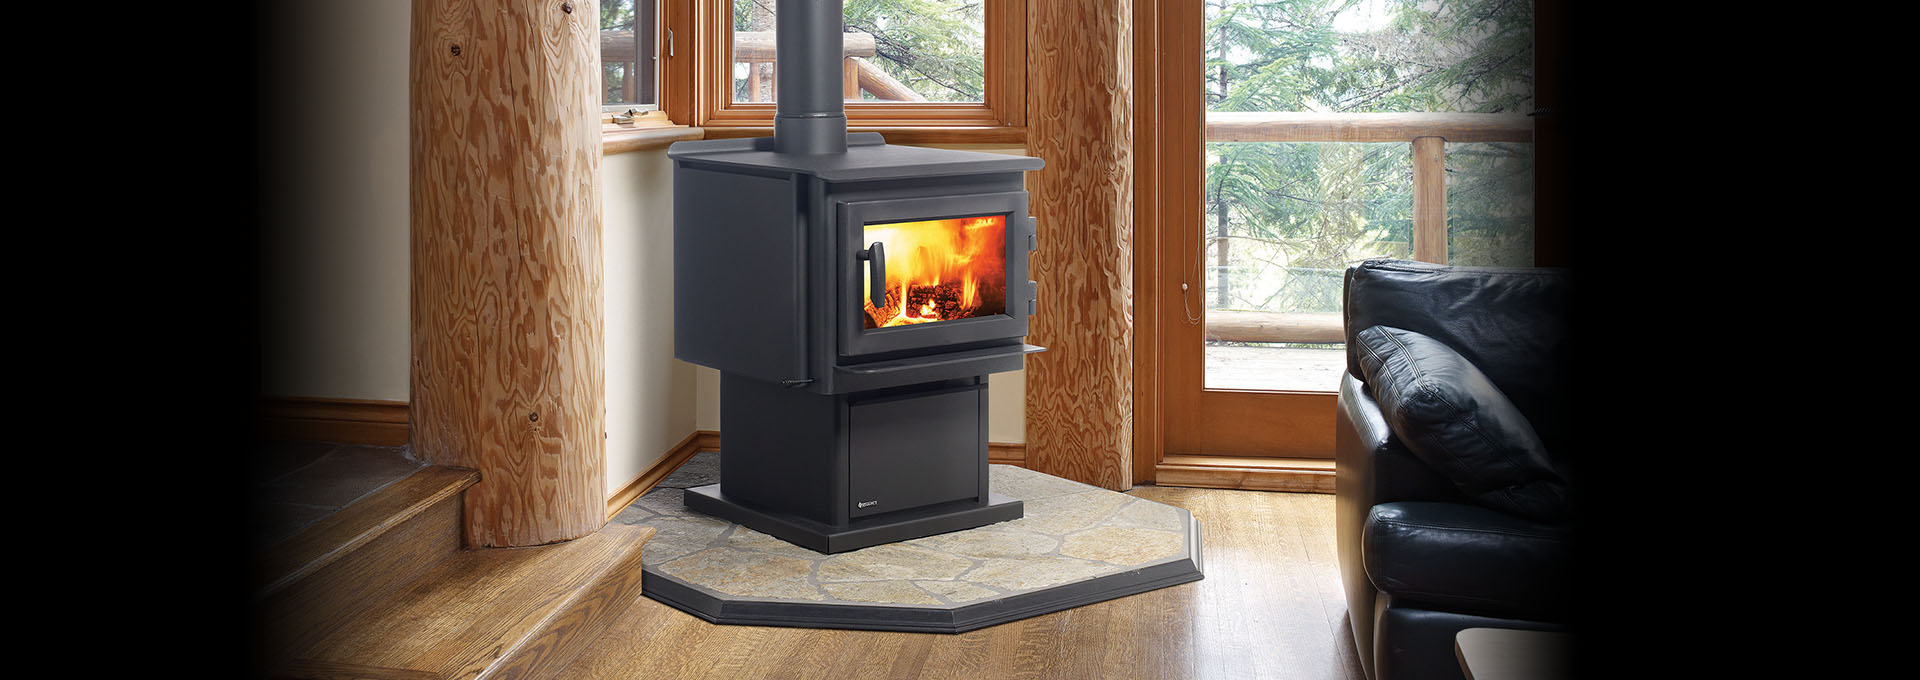 regency wood free standing country fireplace